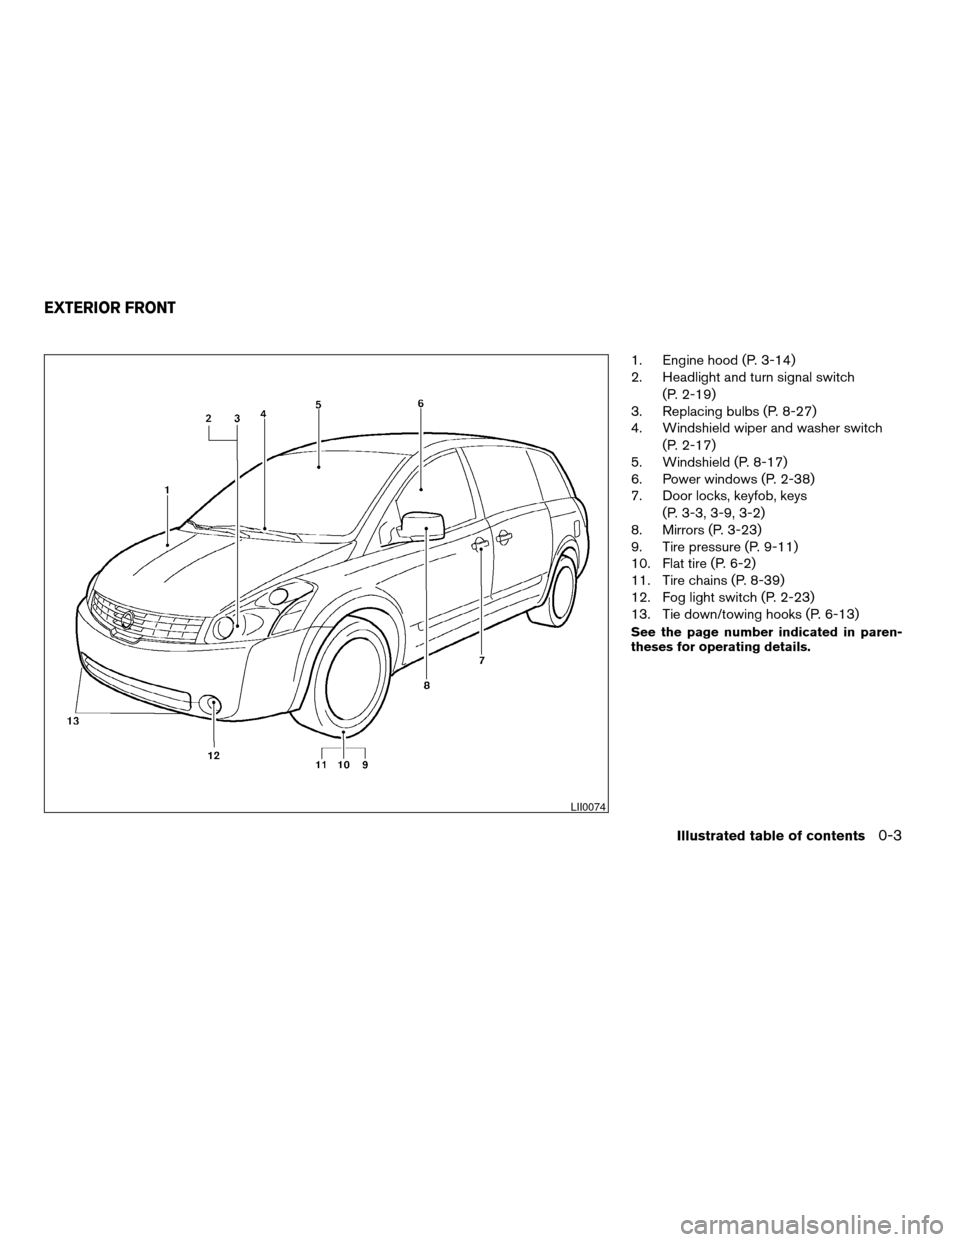 NISSAN QUEST 2007 V42 / 3.G Owners Manual